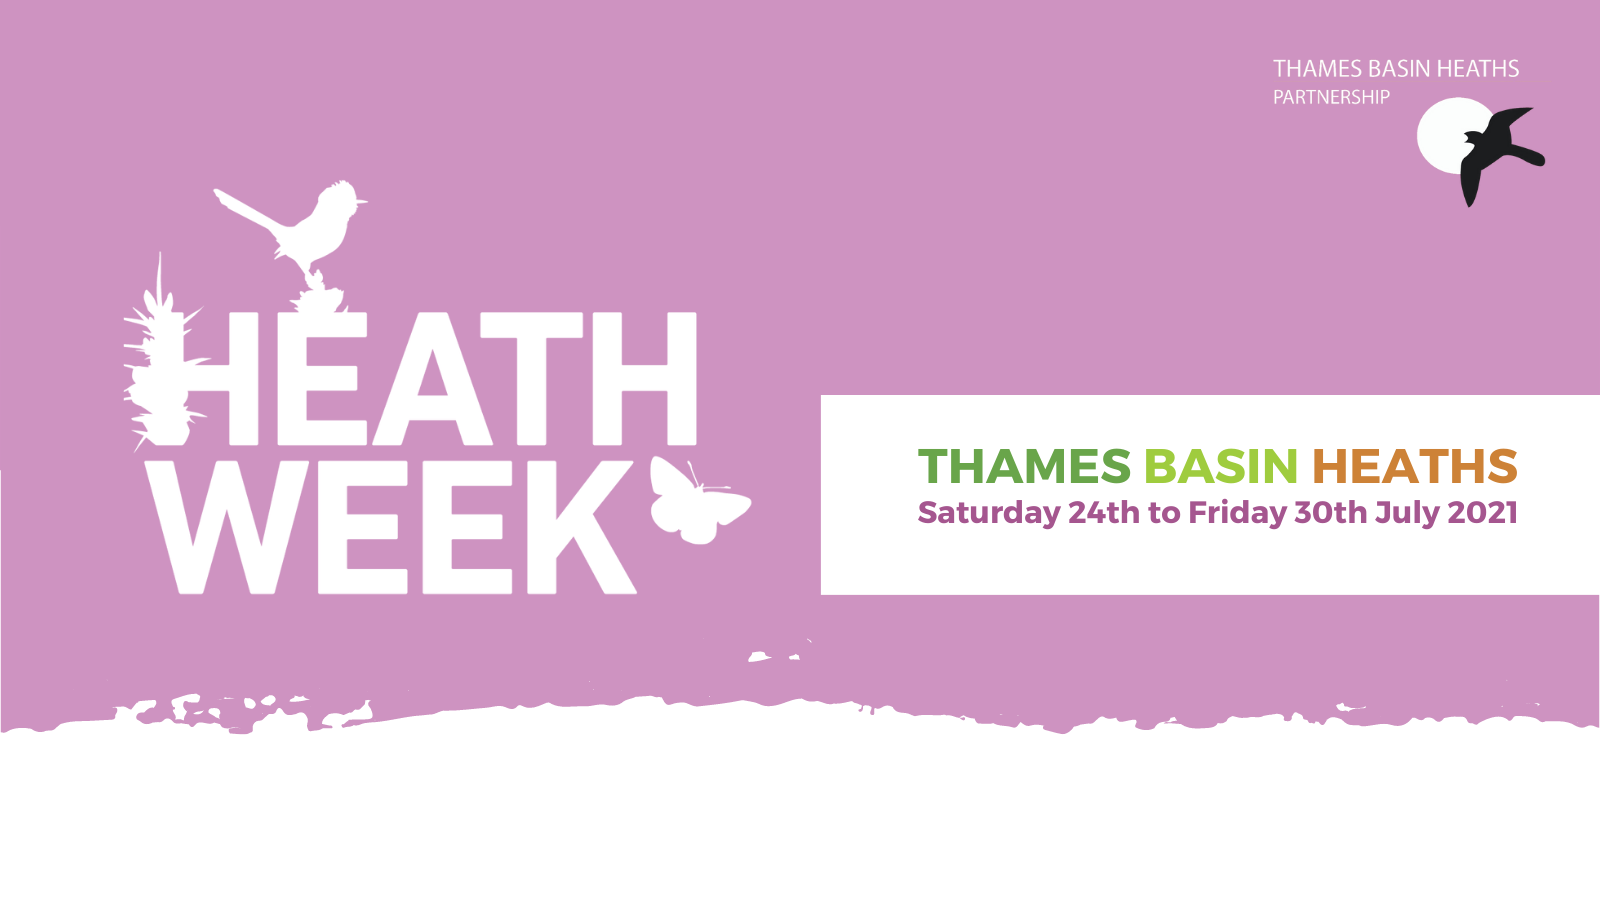 Banner for Heath Week 2021 - Saturday 24th to Friday 30th July 2021